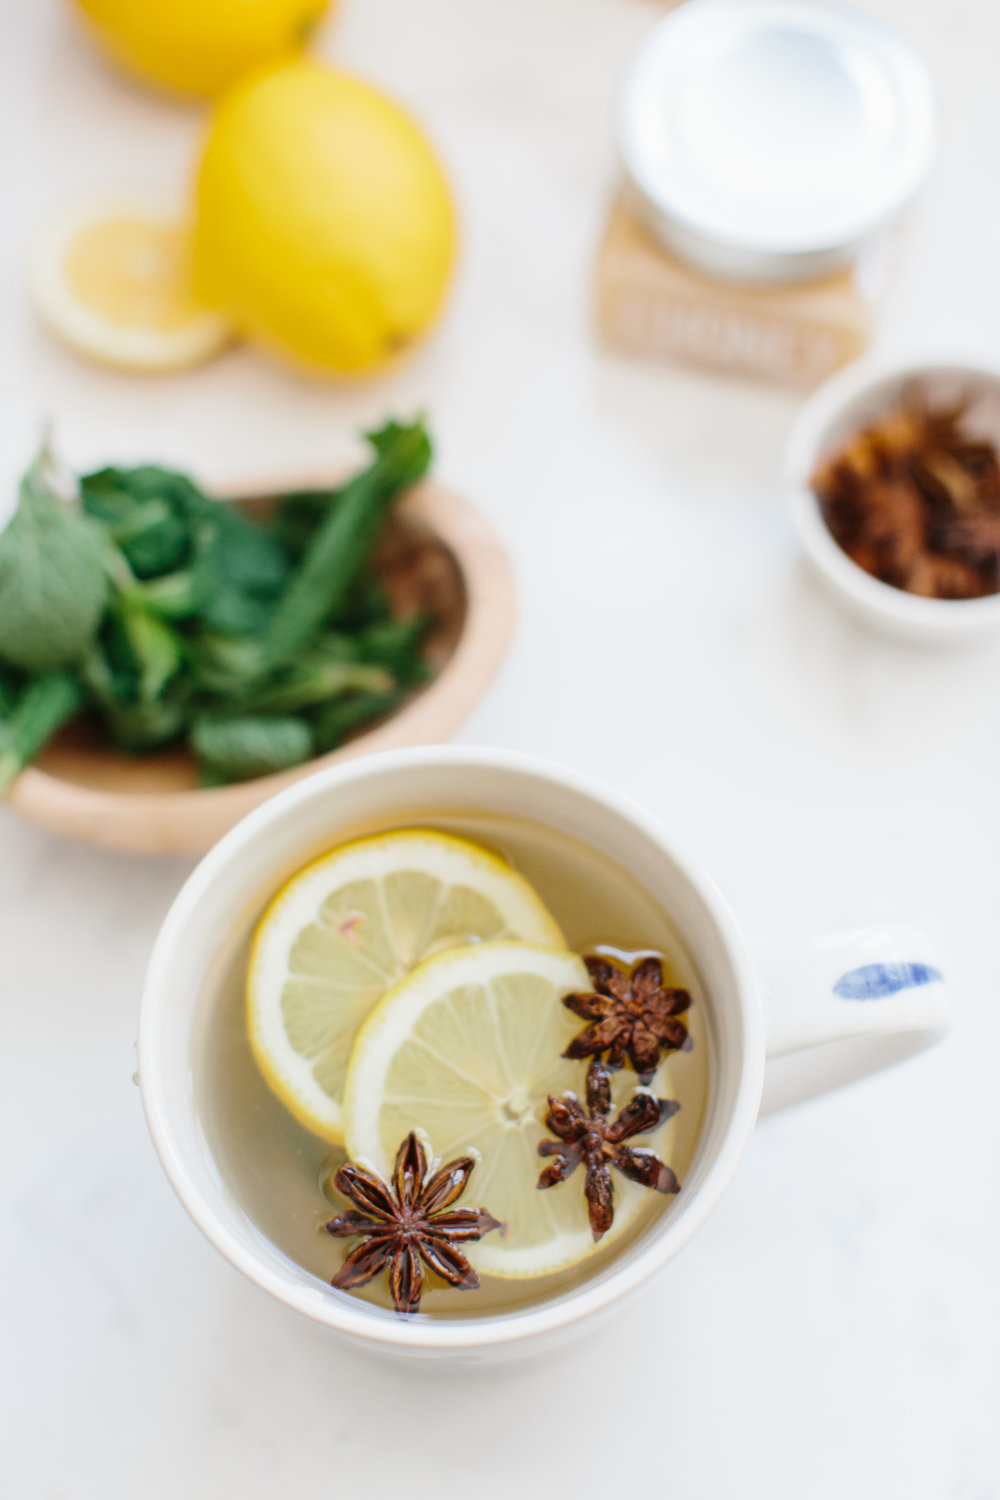 The Almost Healthy Winter Elixir Cocktail Ginger Mint Tea Lemon Honey by Abby Capalbo | Photography: Erin McGinn